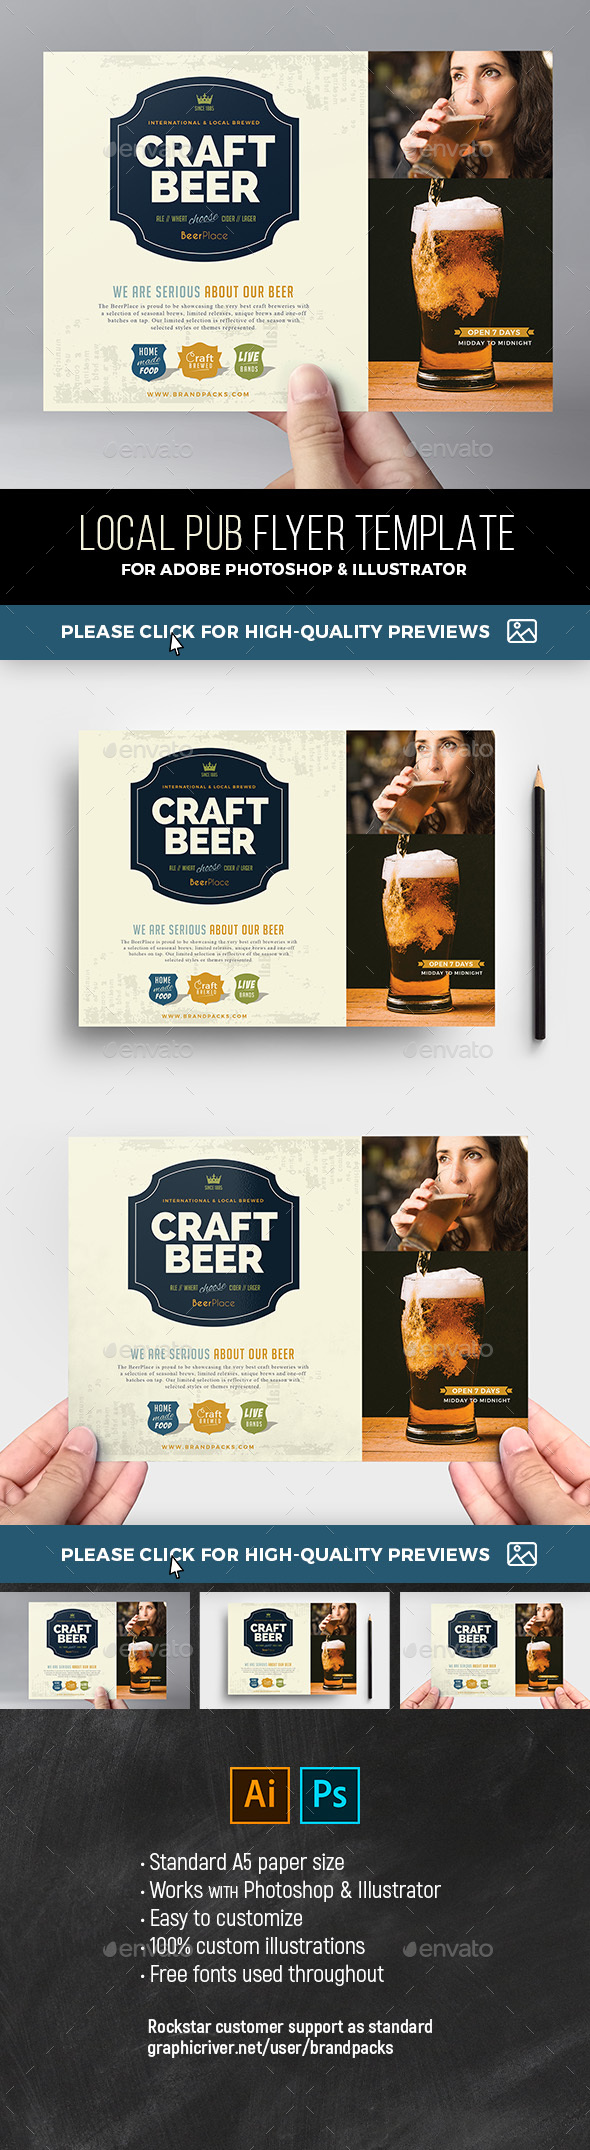 Local Pub Flyer Template v2 - Restaurant Flyers